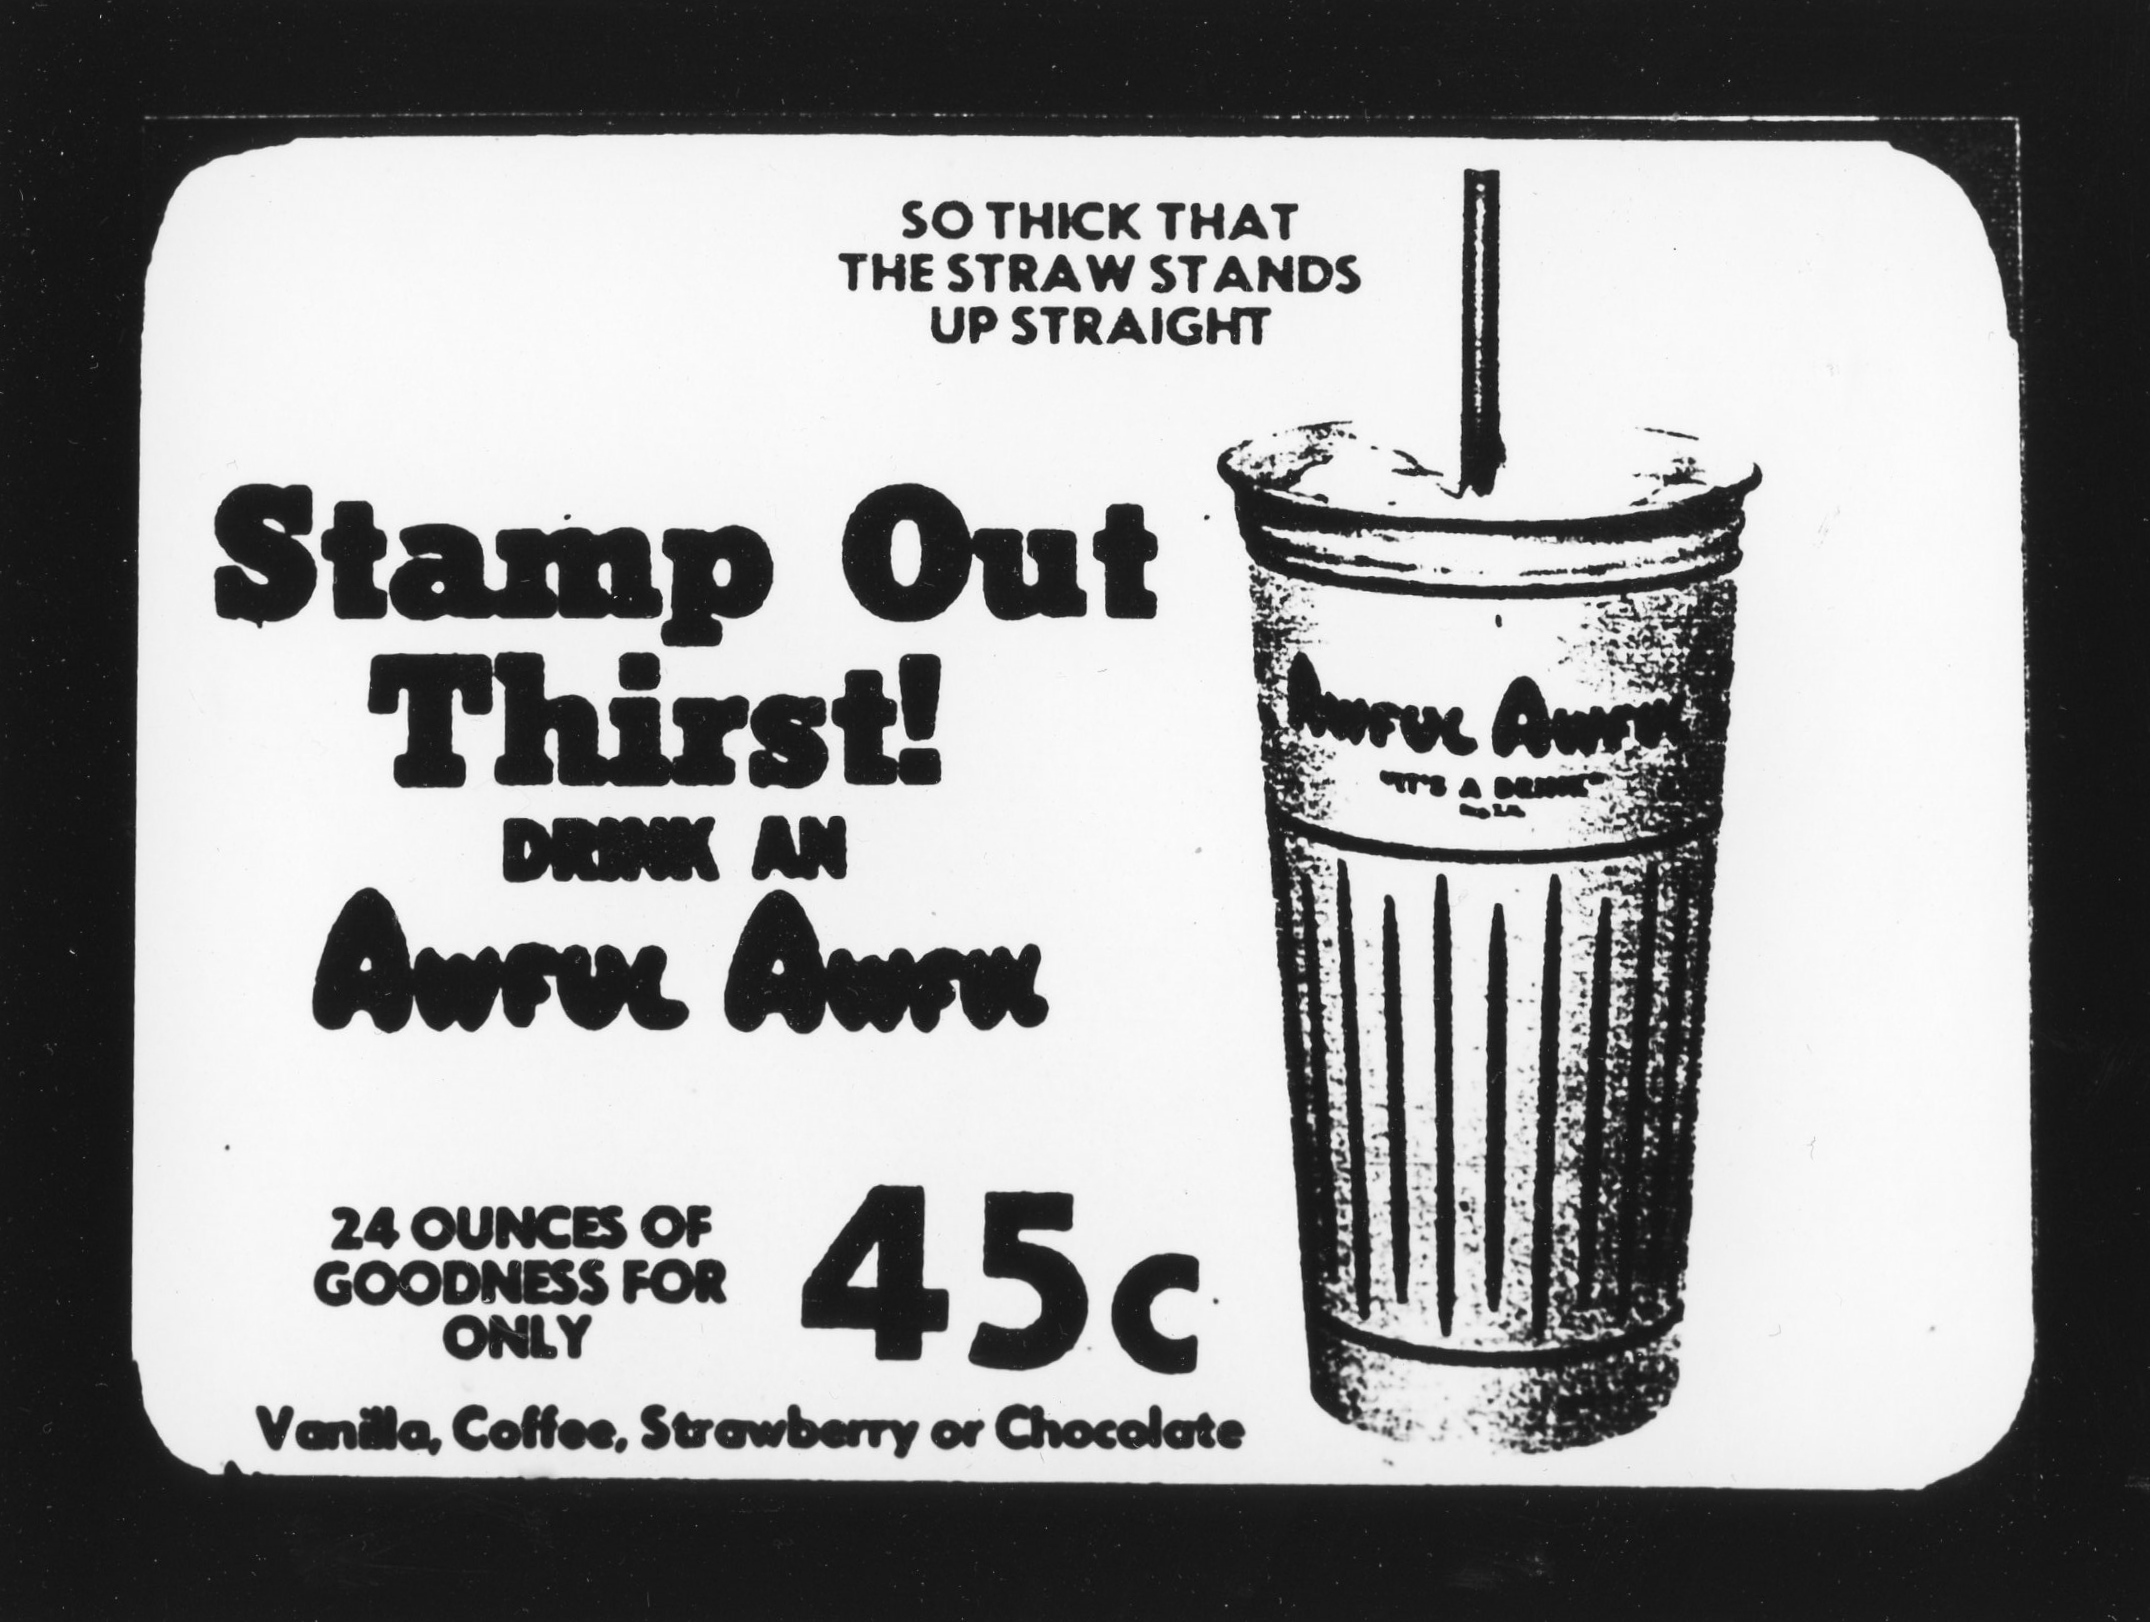 Stamp Out Thirst - Gelatin Silver Print